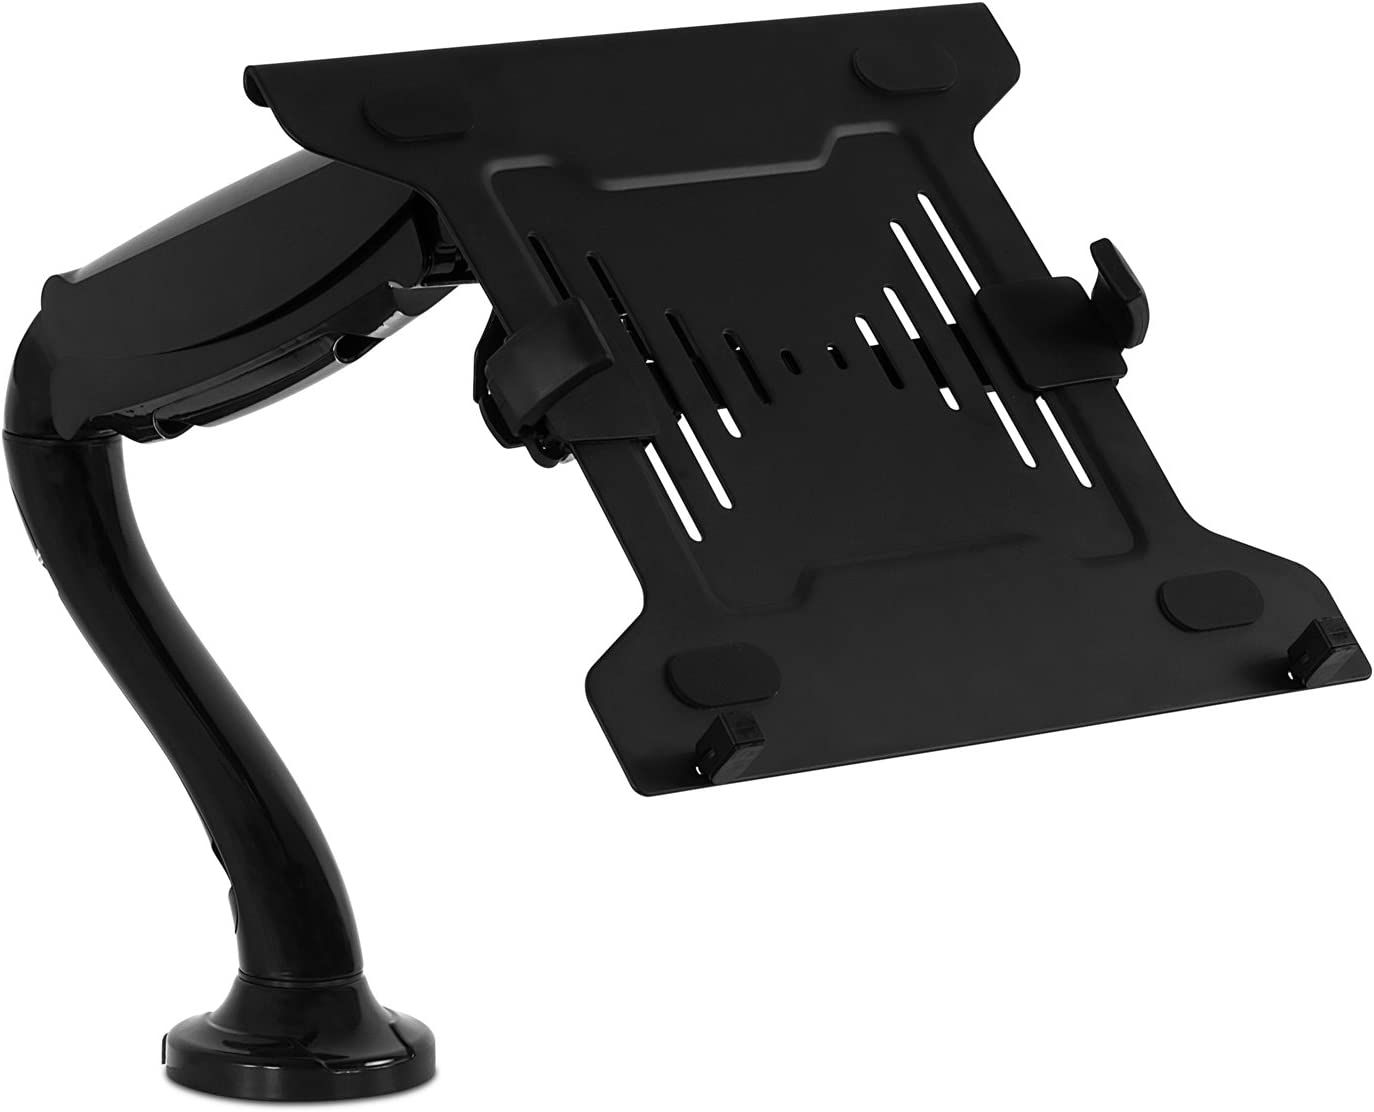 Mount-It! Laptop Desk Arm | Swivel Laptop Stand with Gas Spring Arm | Height Adjustable Laptop Arm Mount for MacBook, Dell, HP & 11-15 Inch Laptops